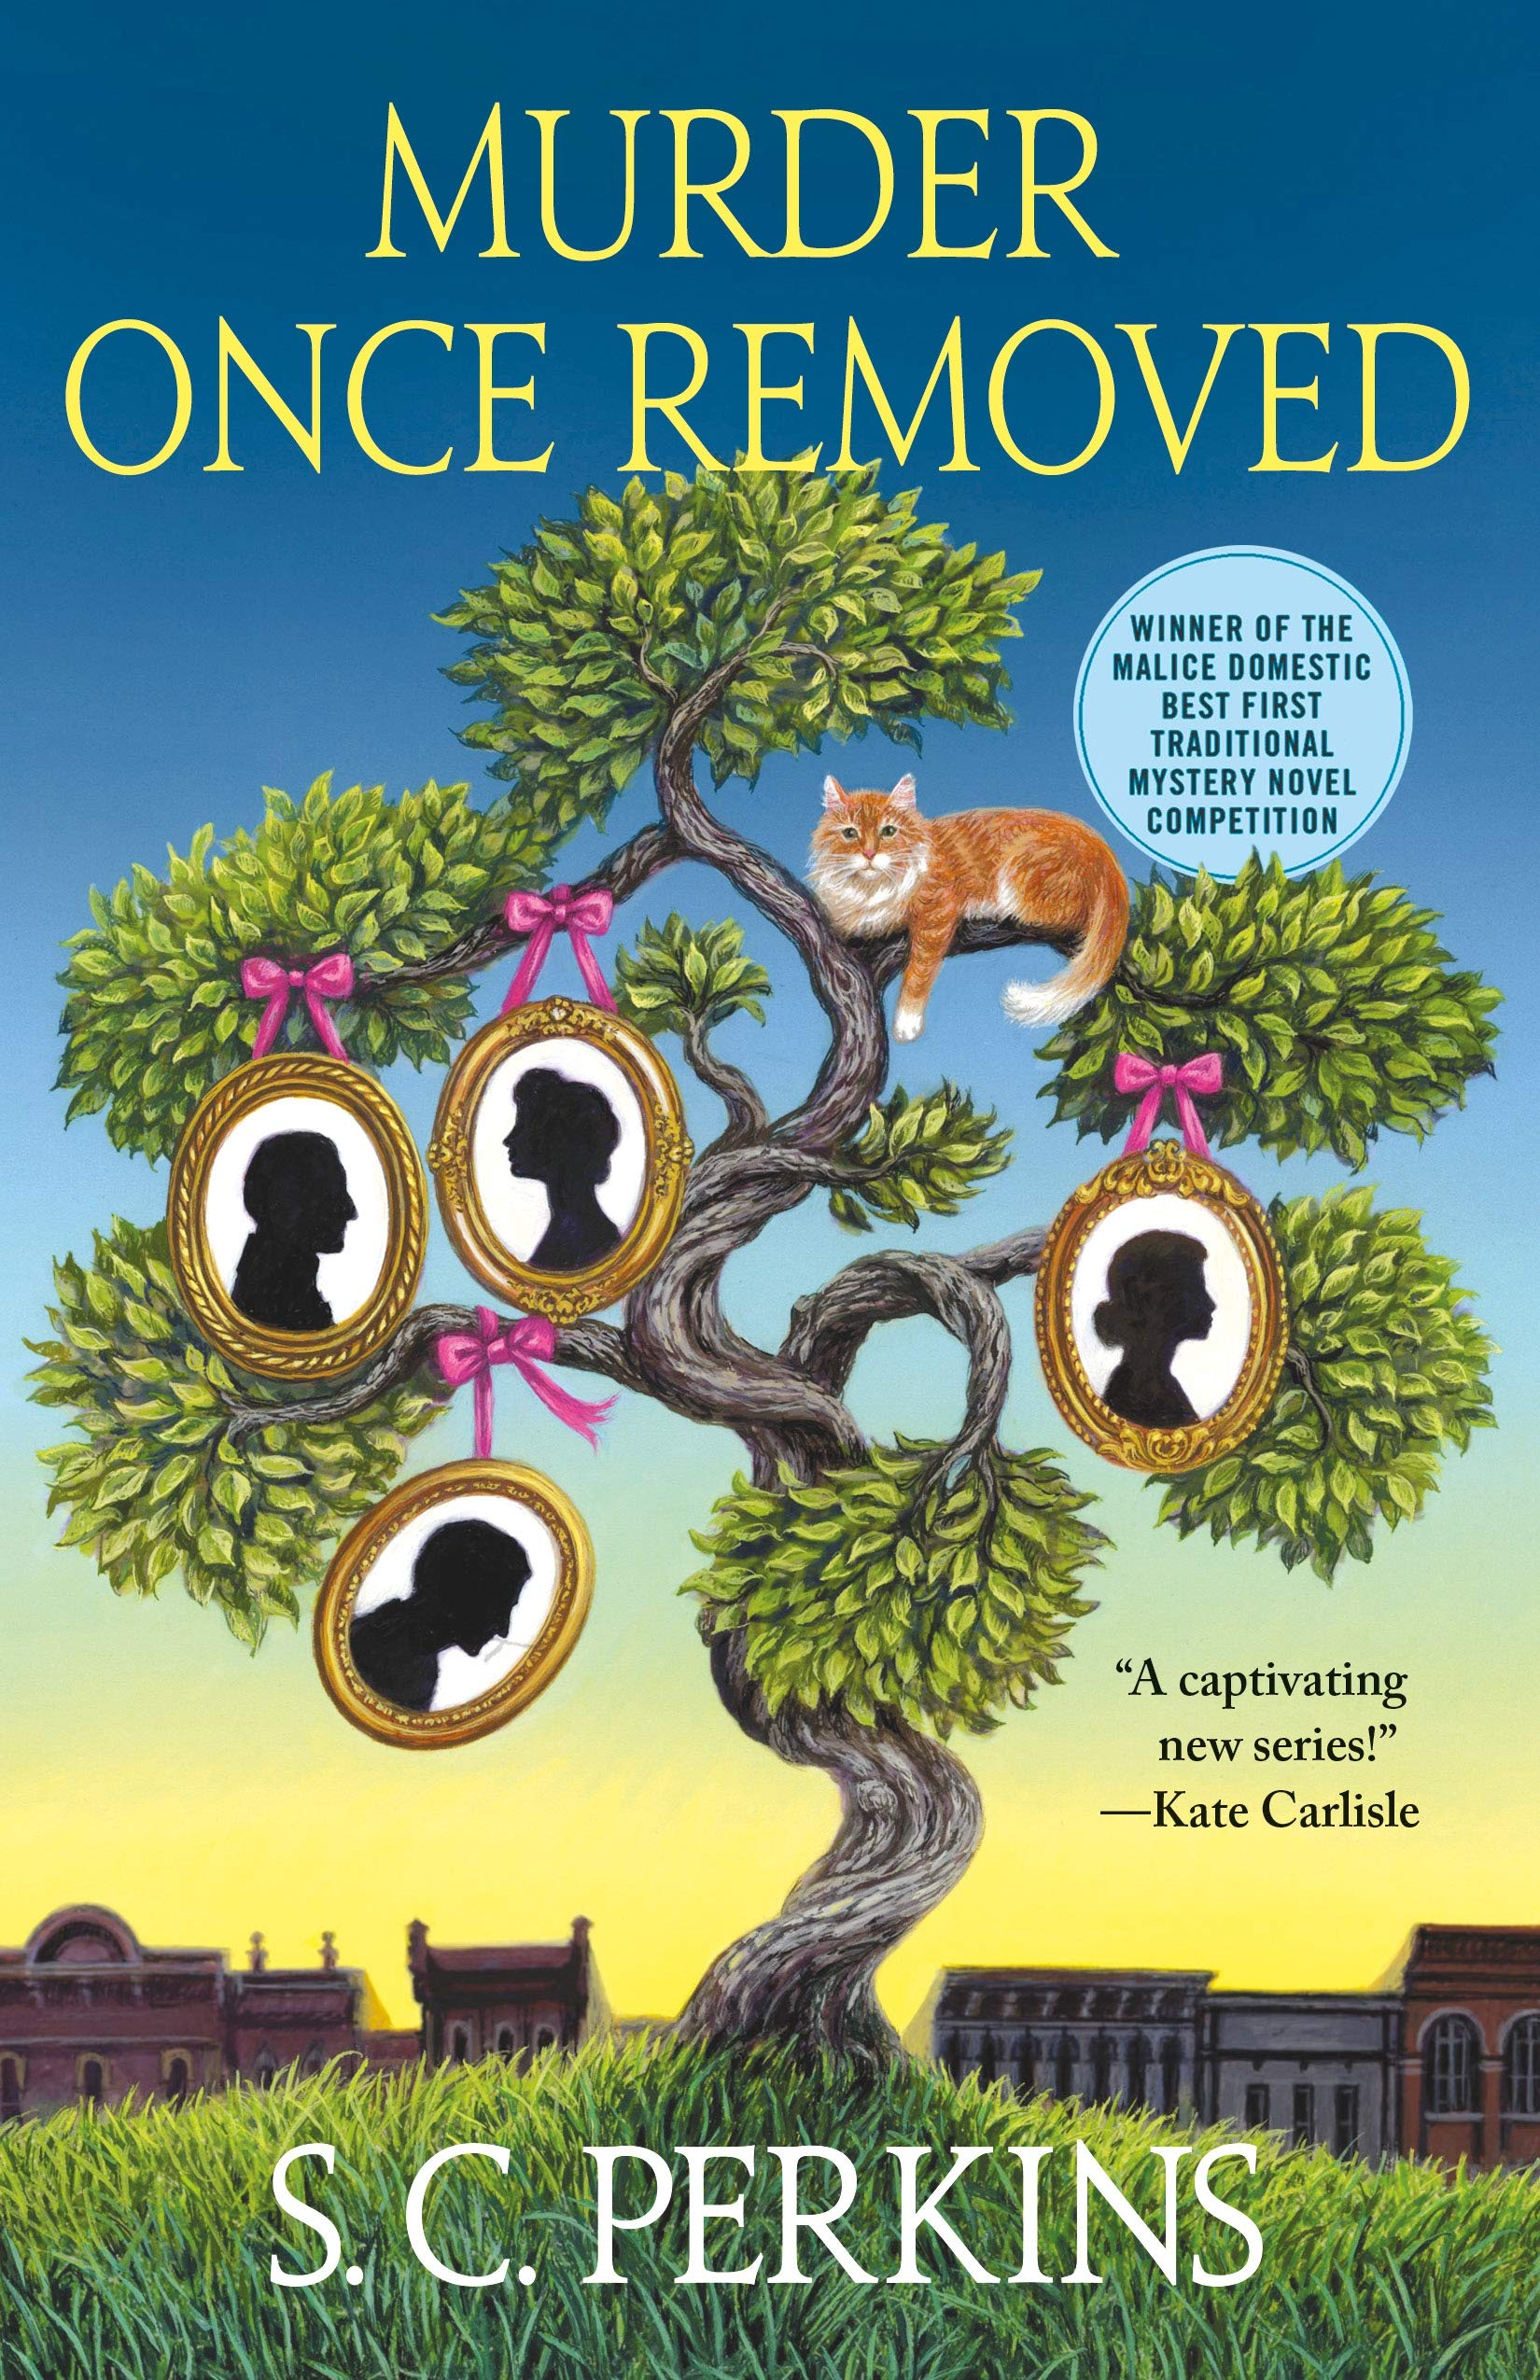 Murder Once Removed by S.C. Perkins